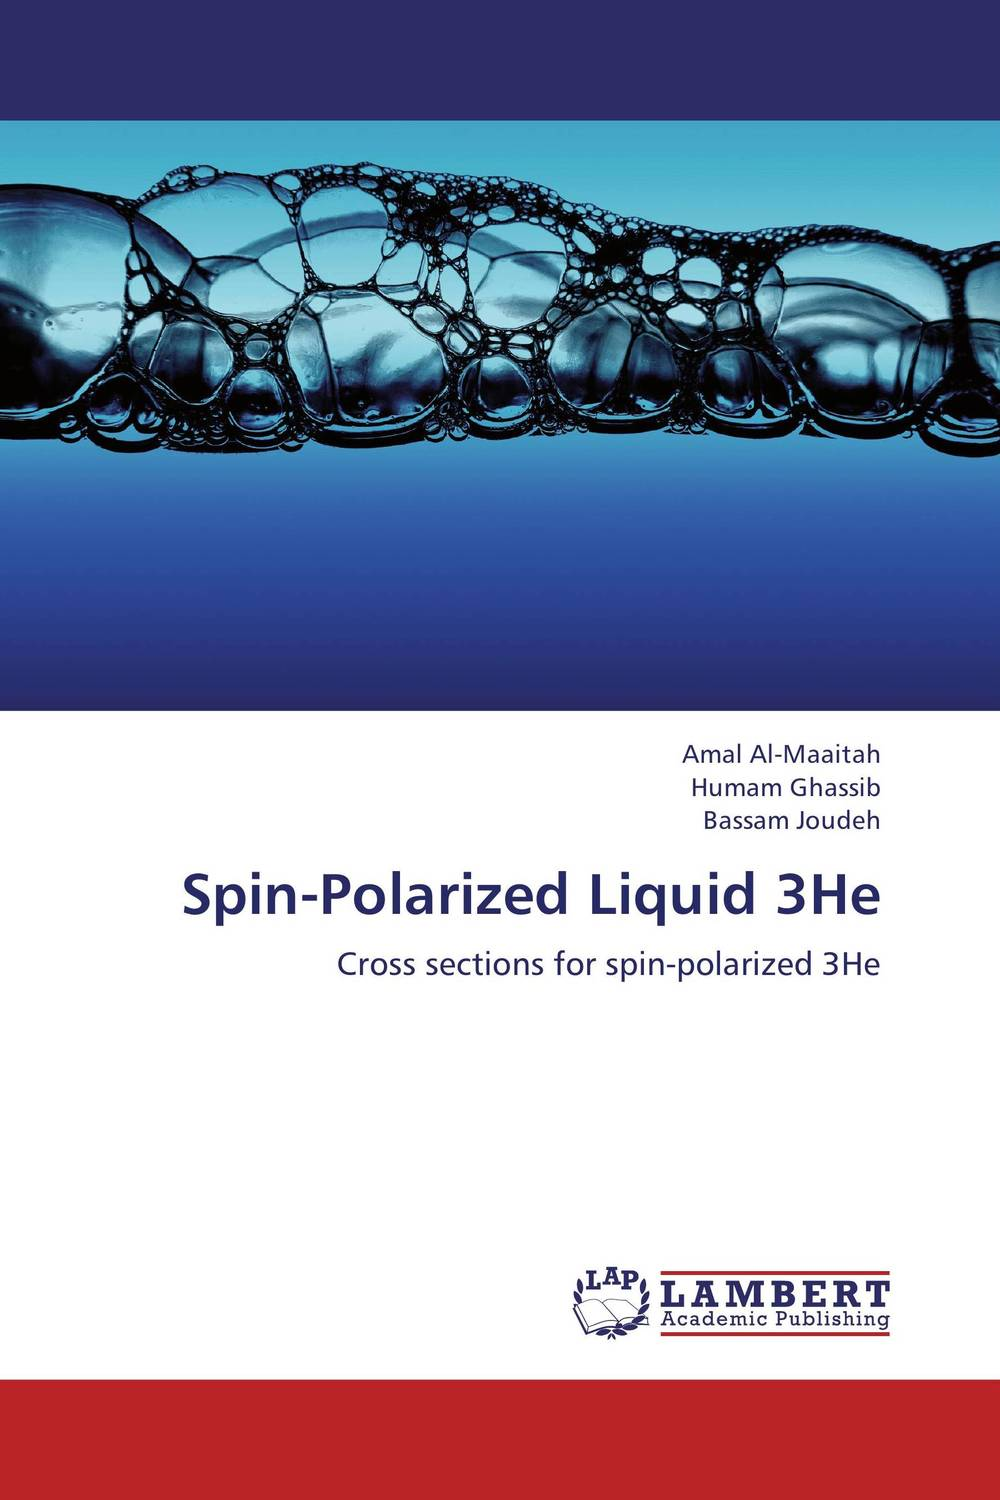 Spin-Polarized Liquid 3He surface nuclear magnetic resonance